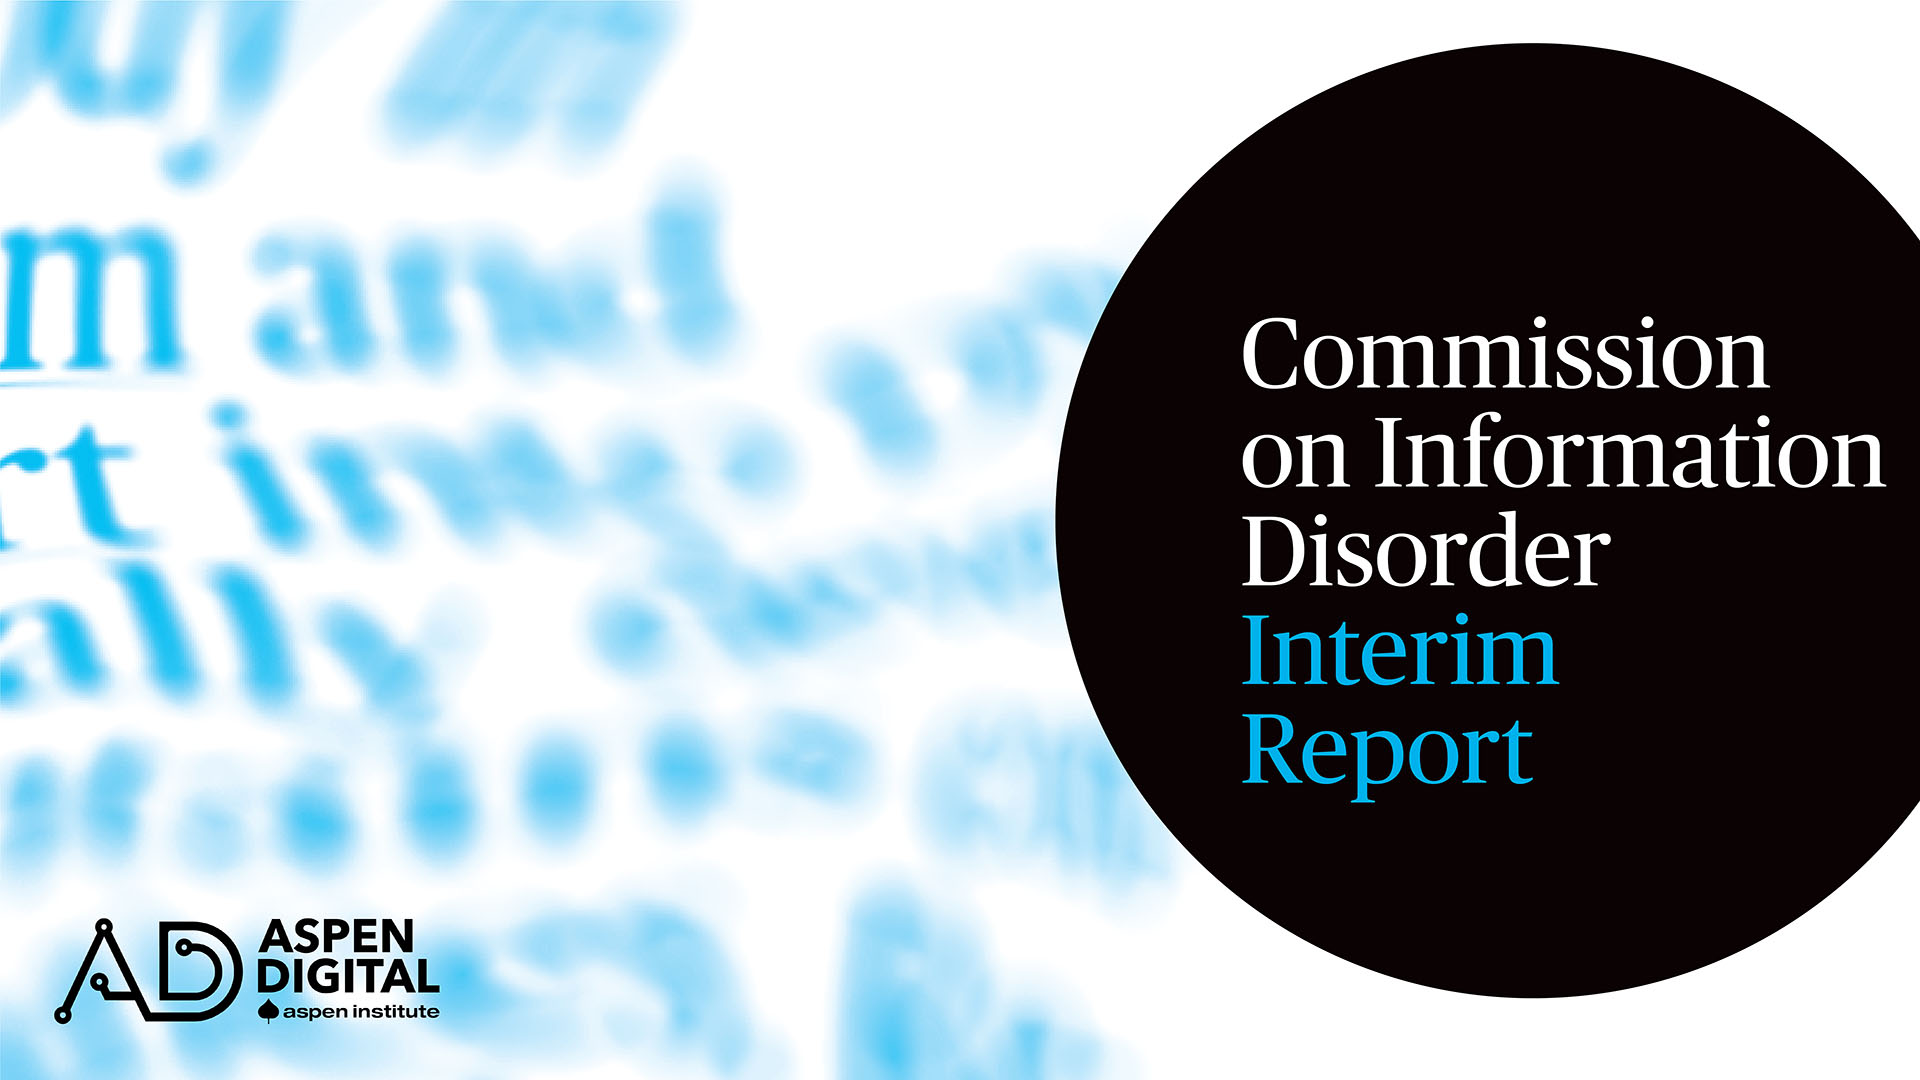 Commission on Information Disorder Interim Report Launch